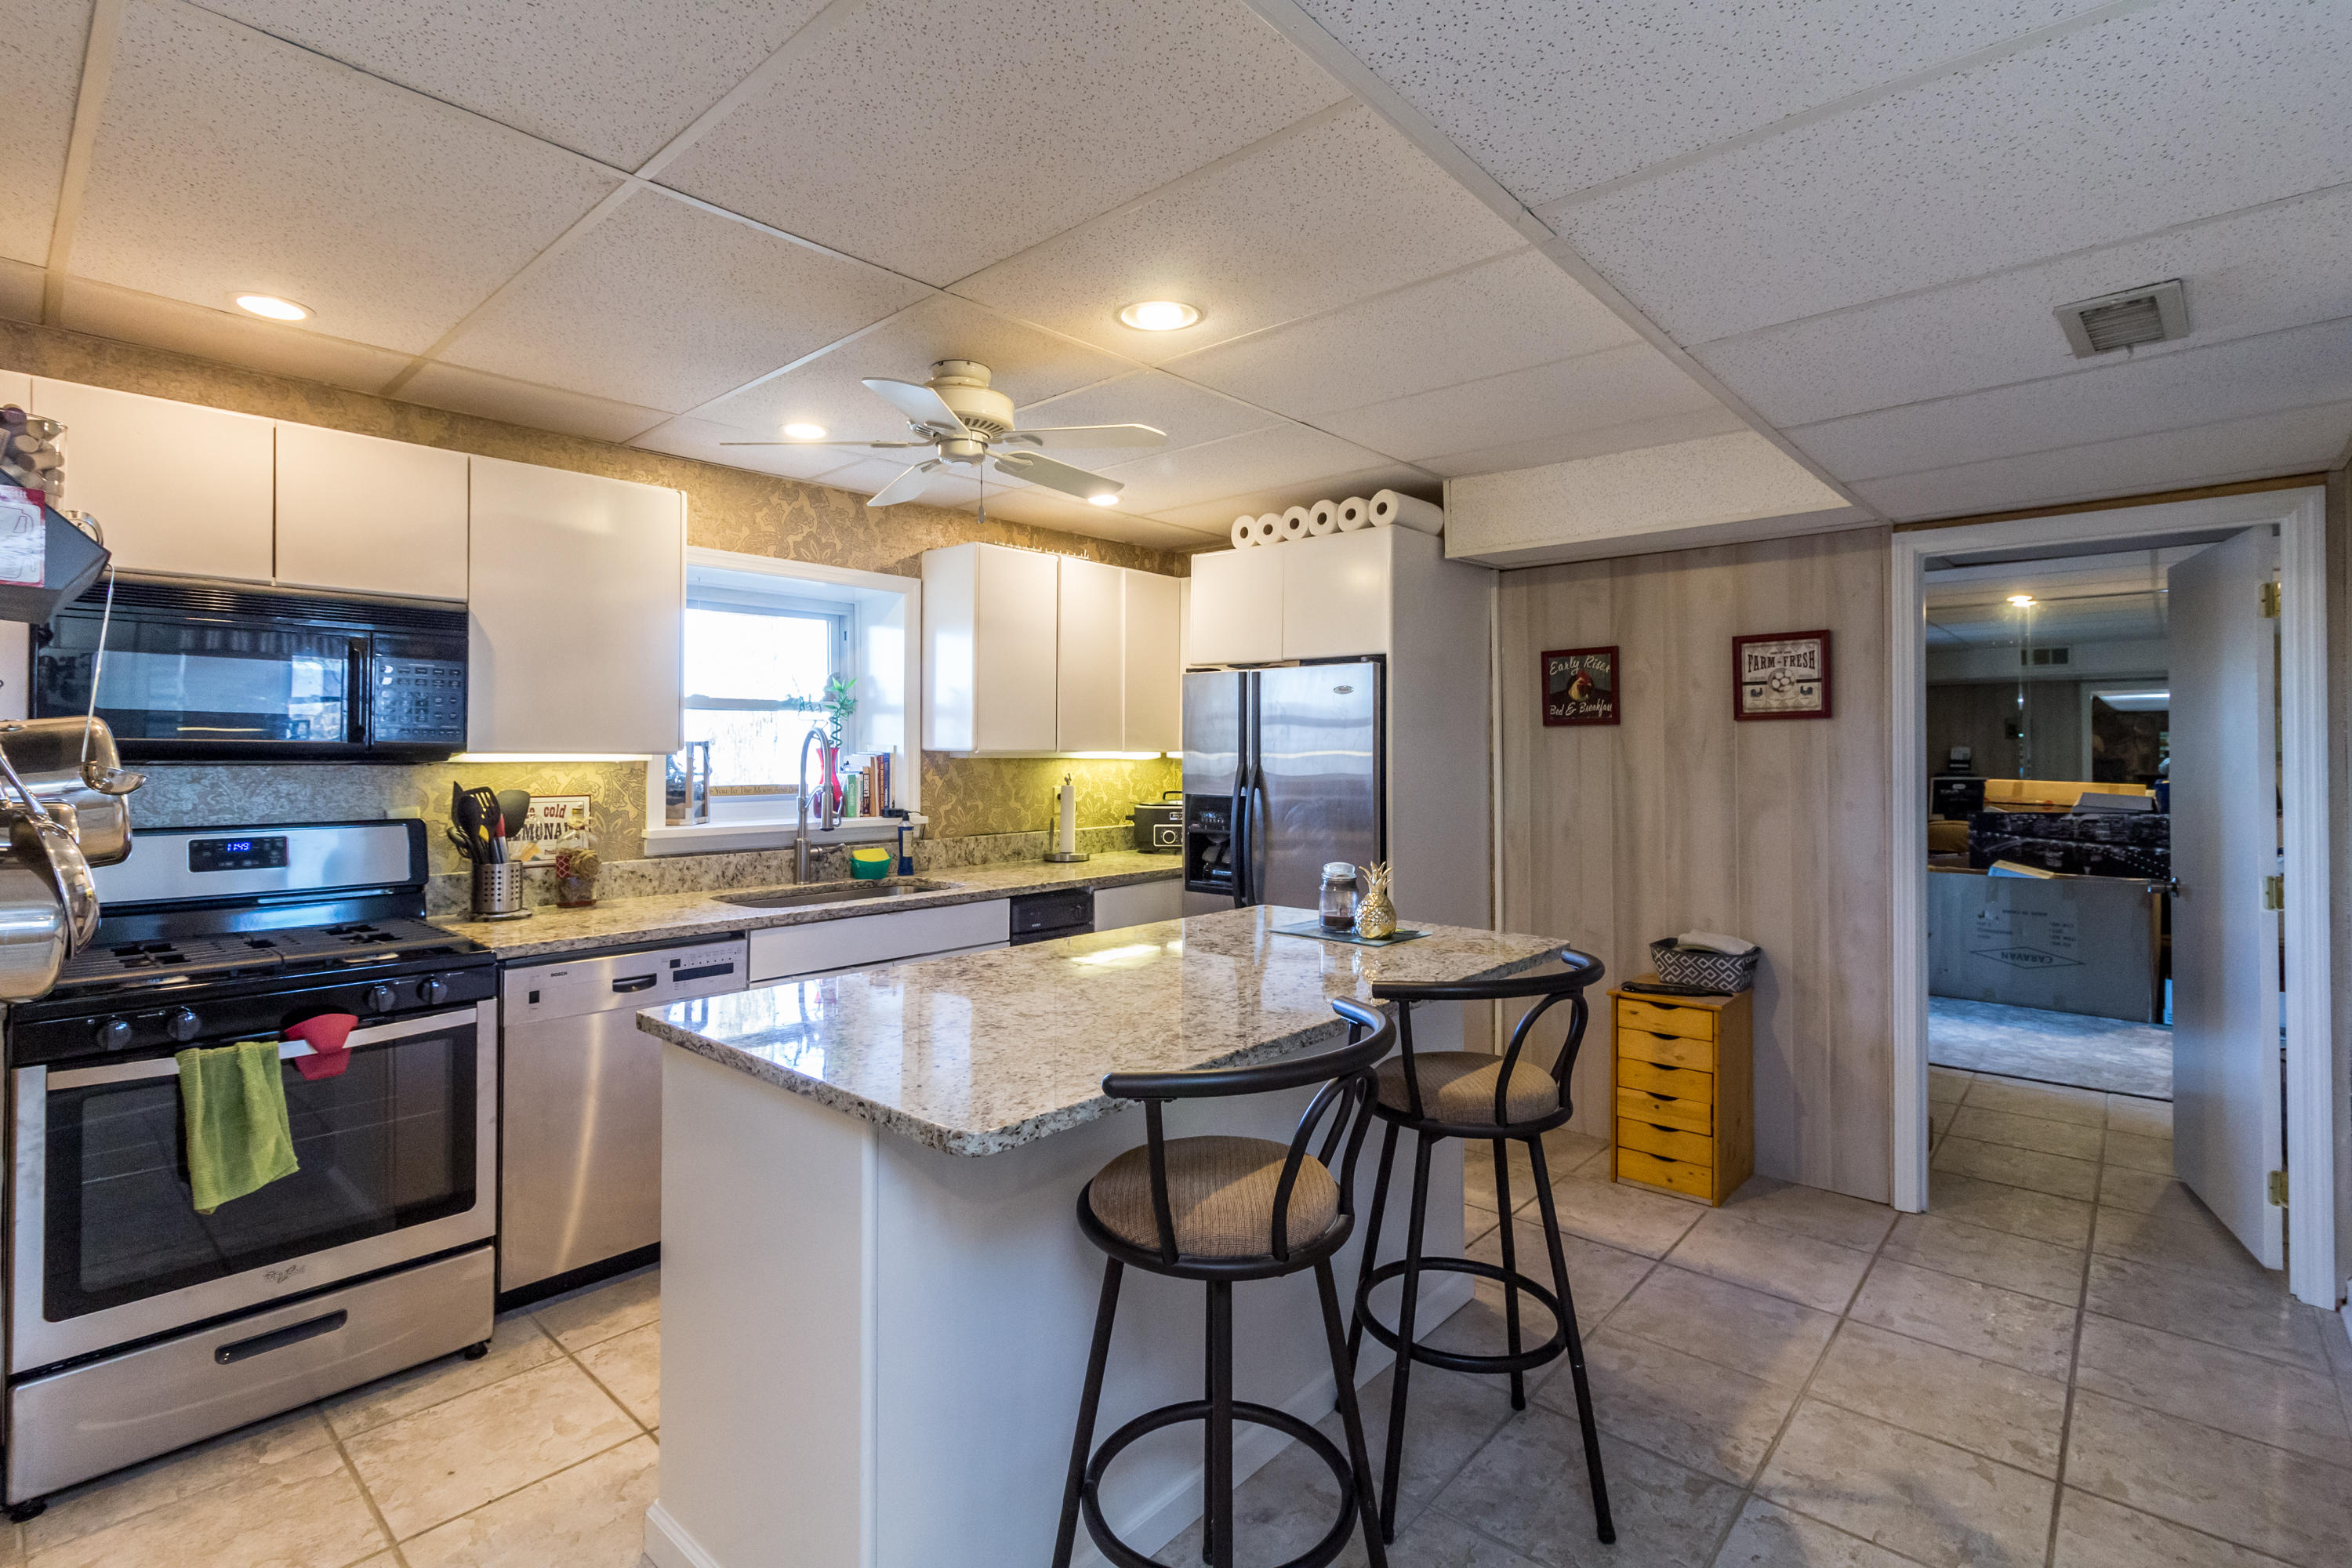 201 S Crest Rd, Chattanooga, TN 37404